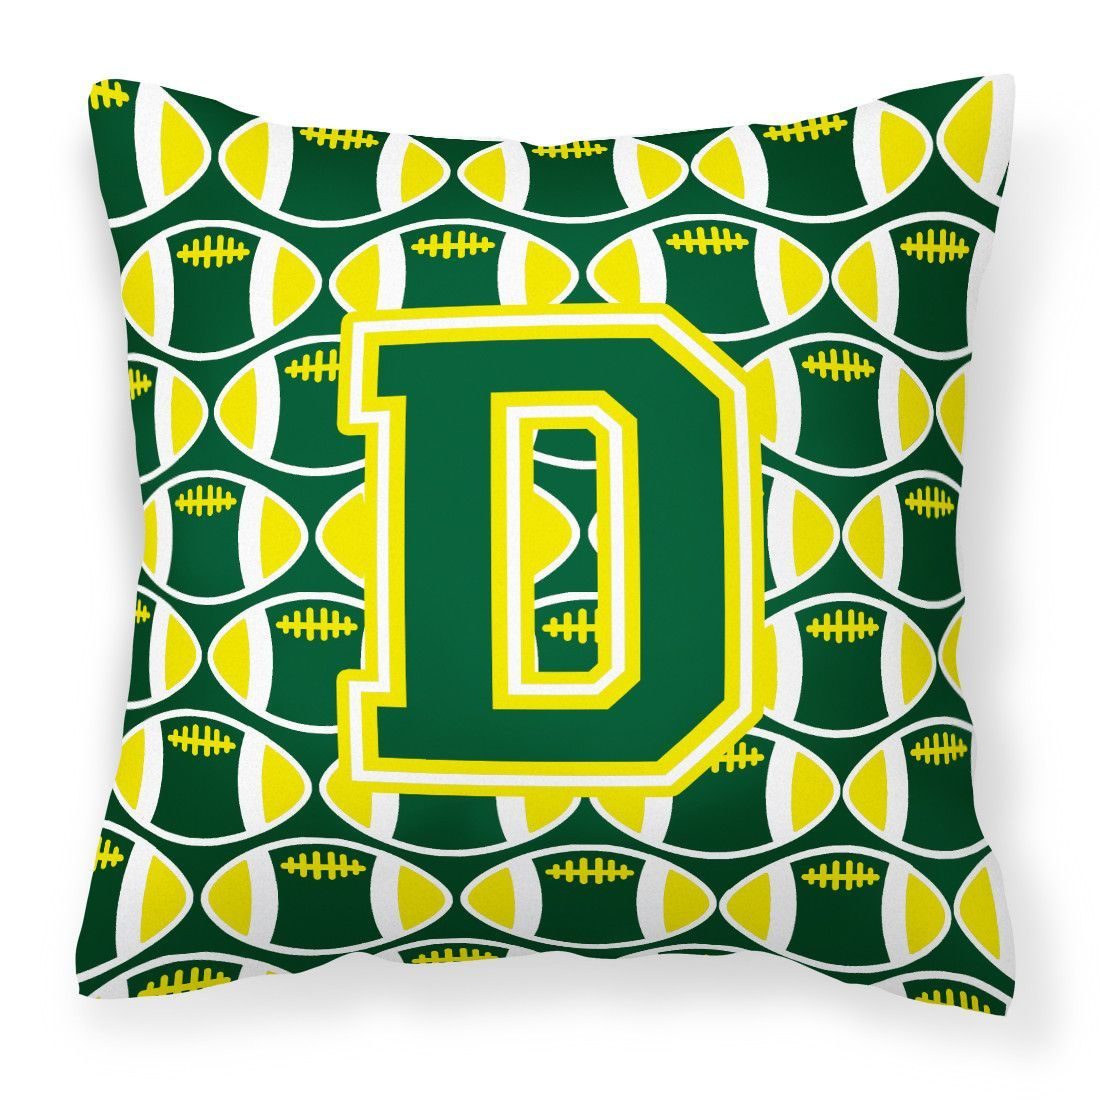 Letter D Football Green and Yellow Fabric Decorative Pillow CJ1075-DPW1414